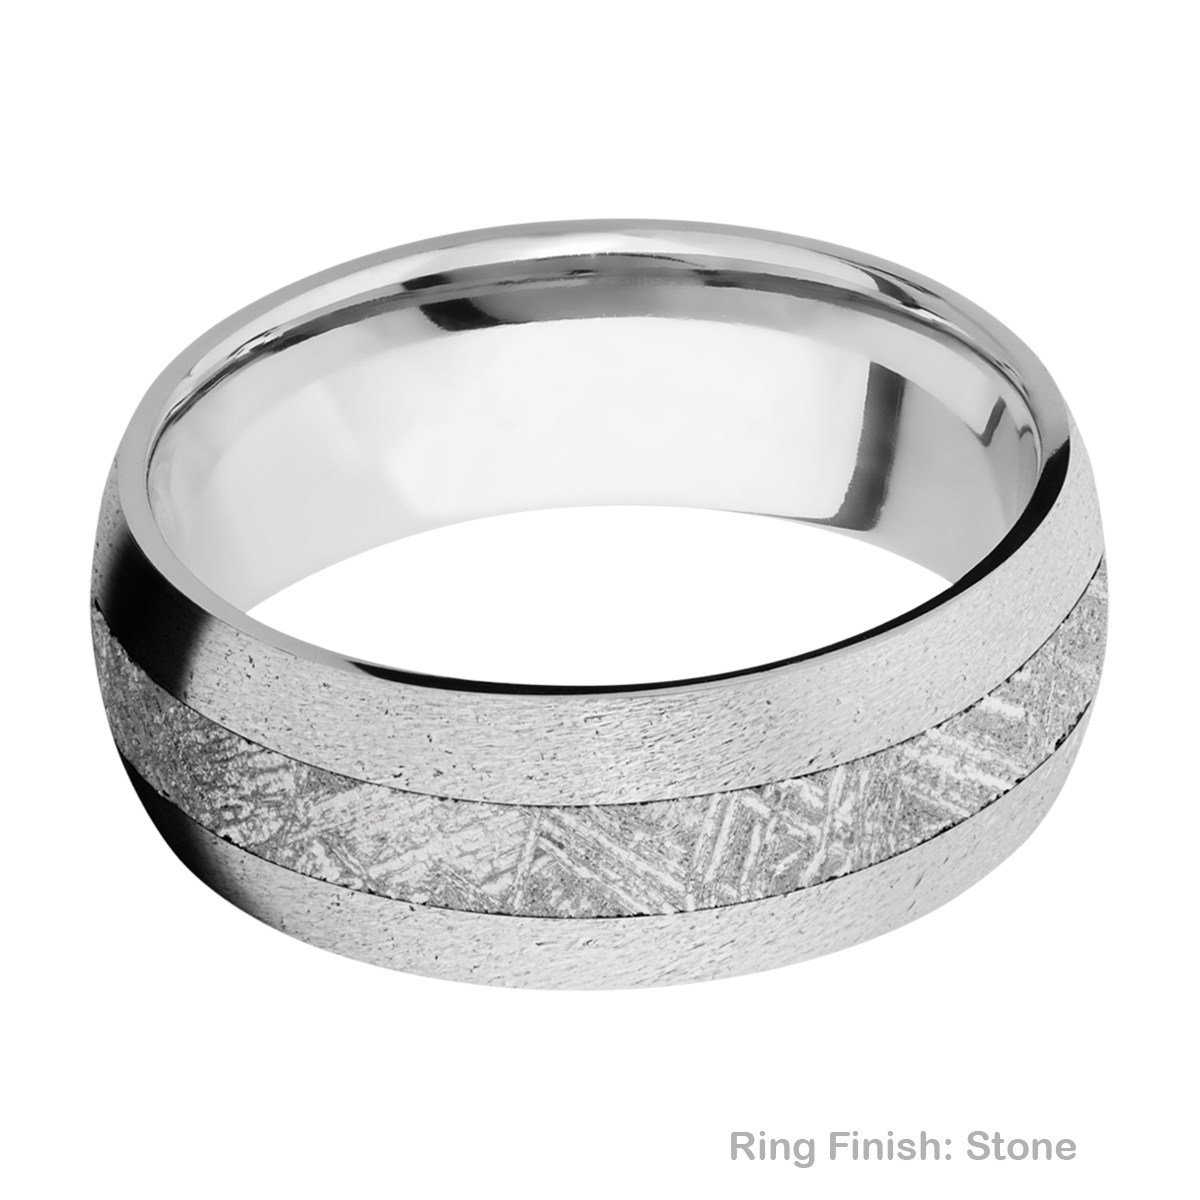 Lashbrook CC8D13/METEORITE Cobalt Chrome Wedding Ring or Band Alternative View 6